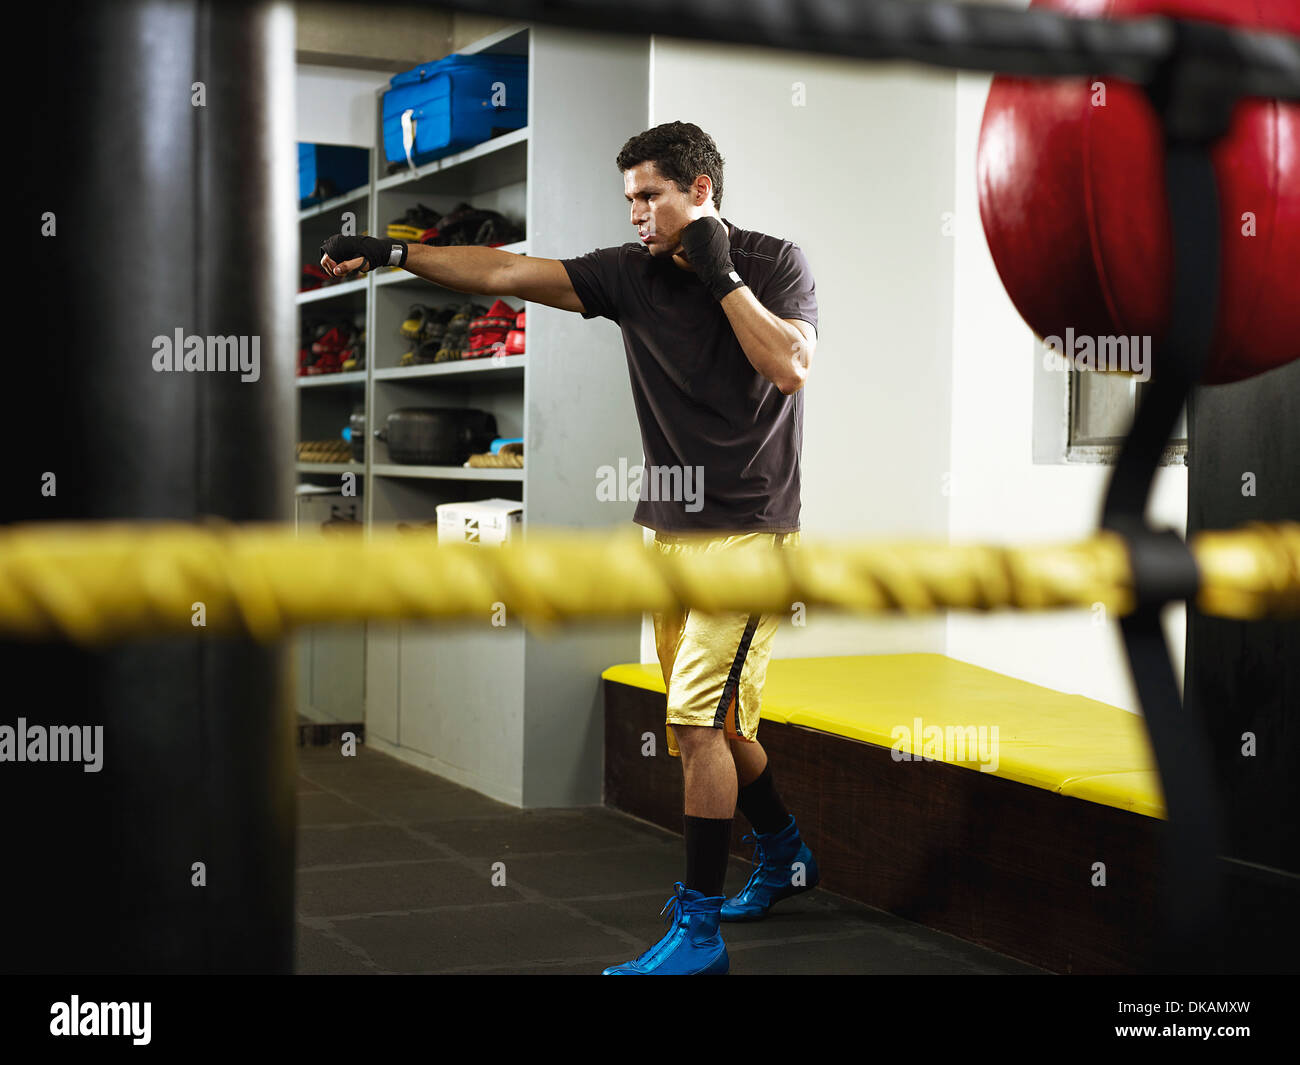 Boxer warming up in changing room - Stock Image